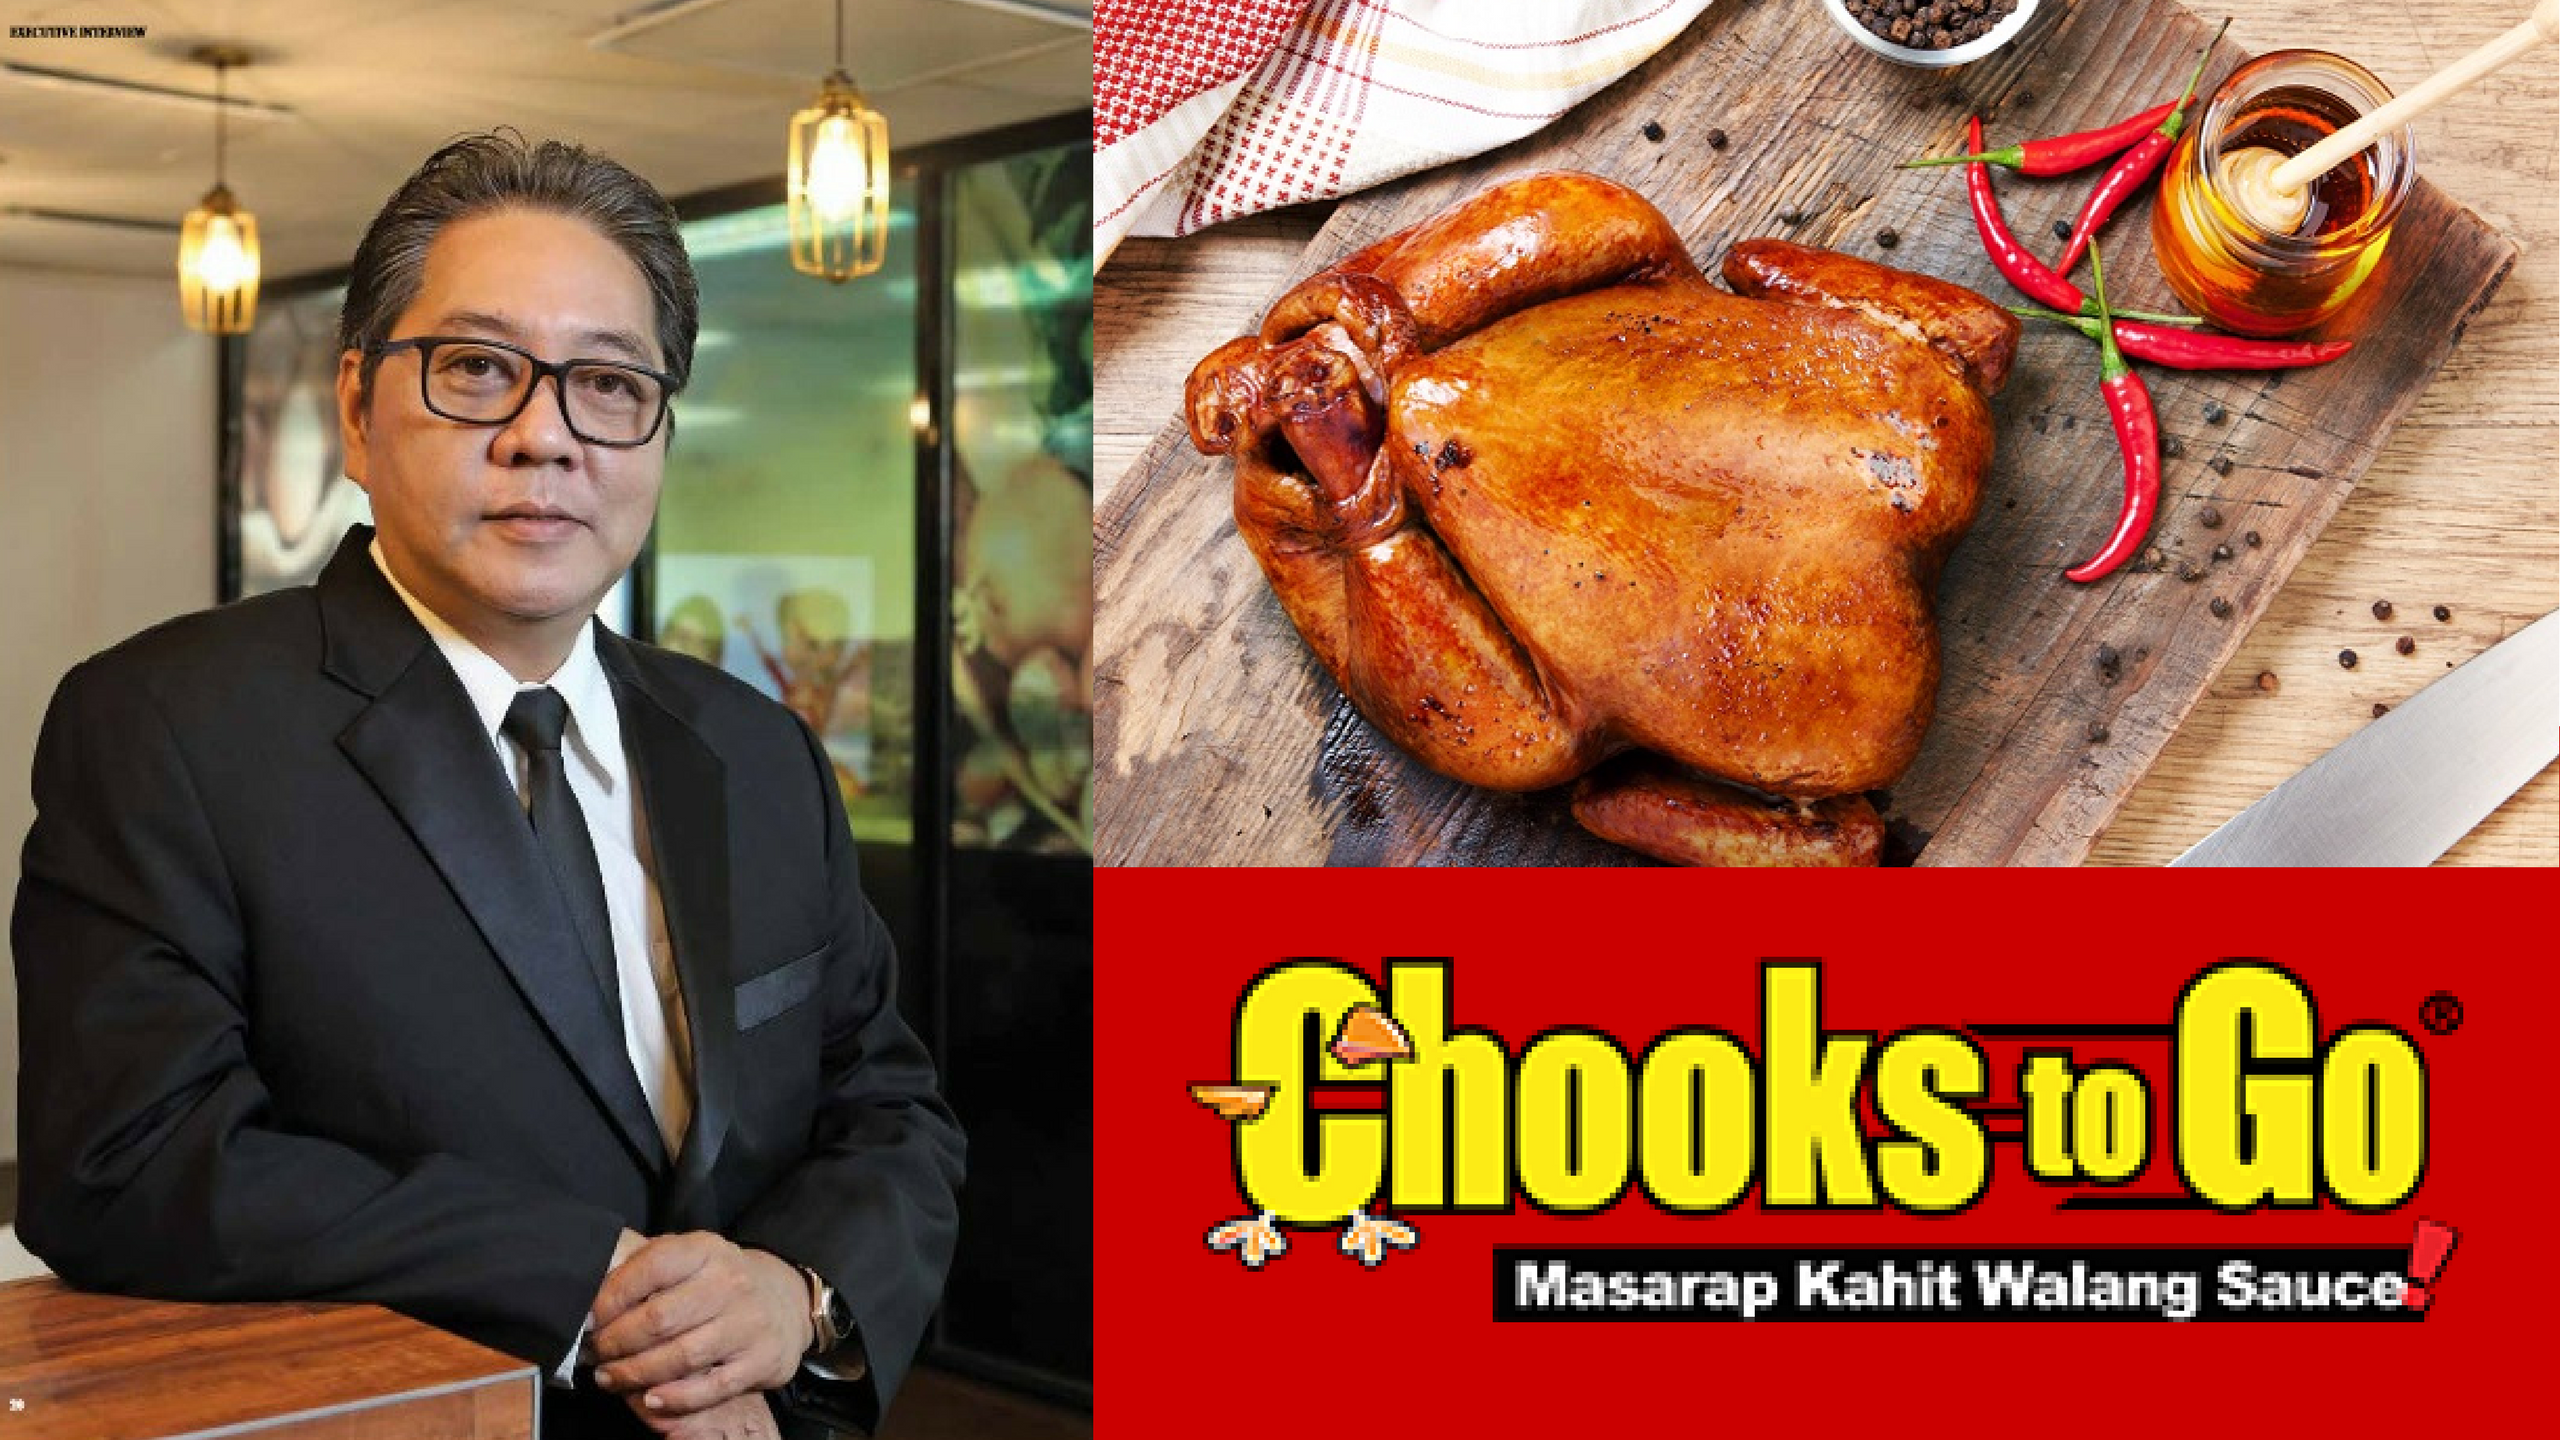 Chooks-to-go: How Your Favorite Chicken Became a Success